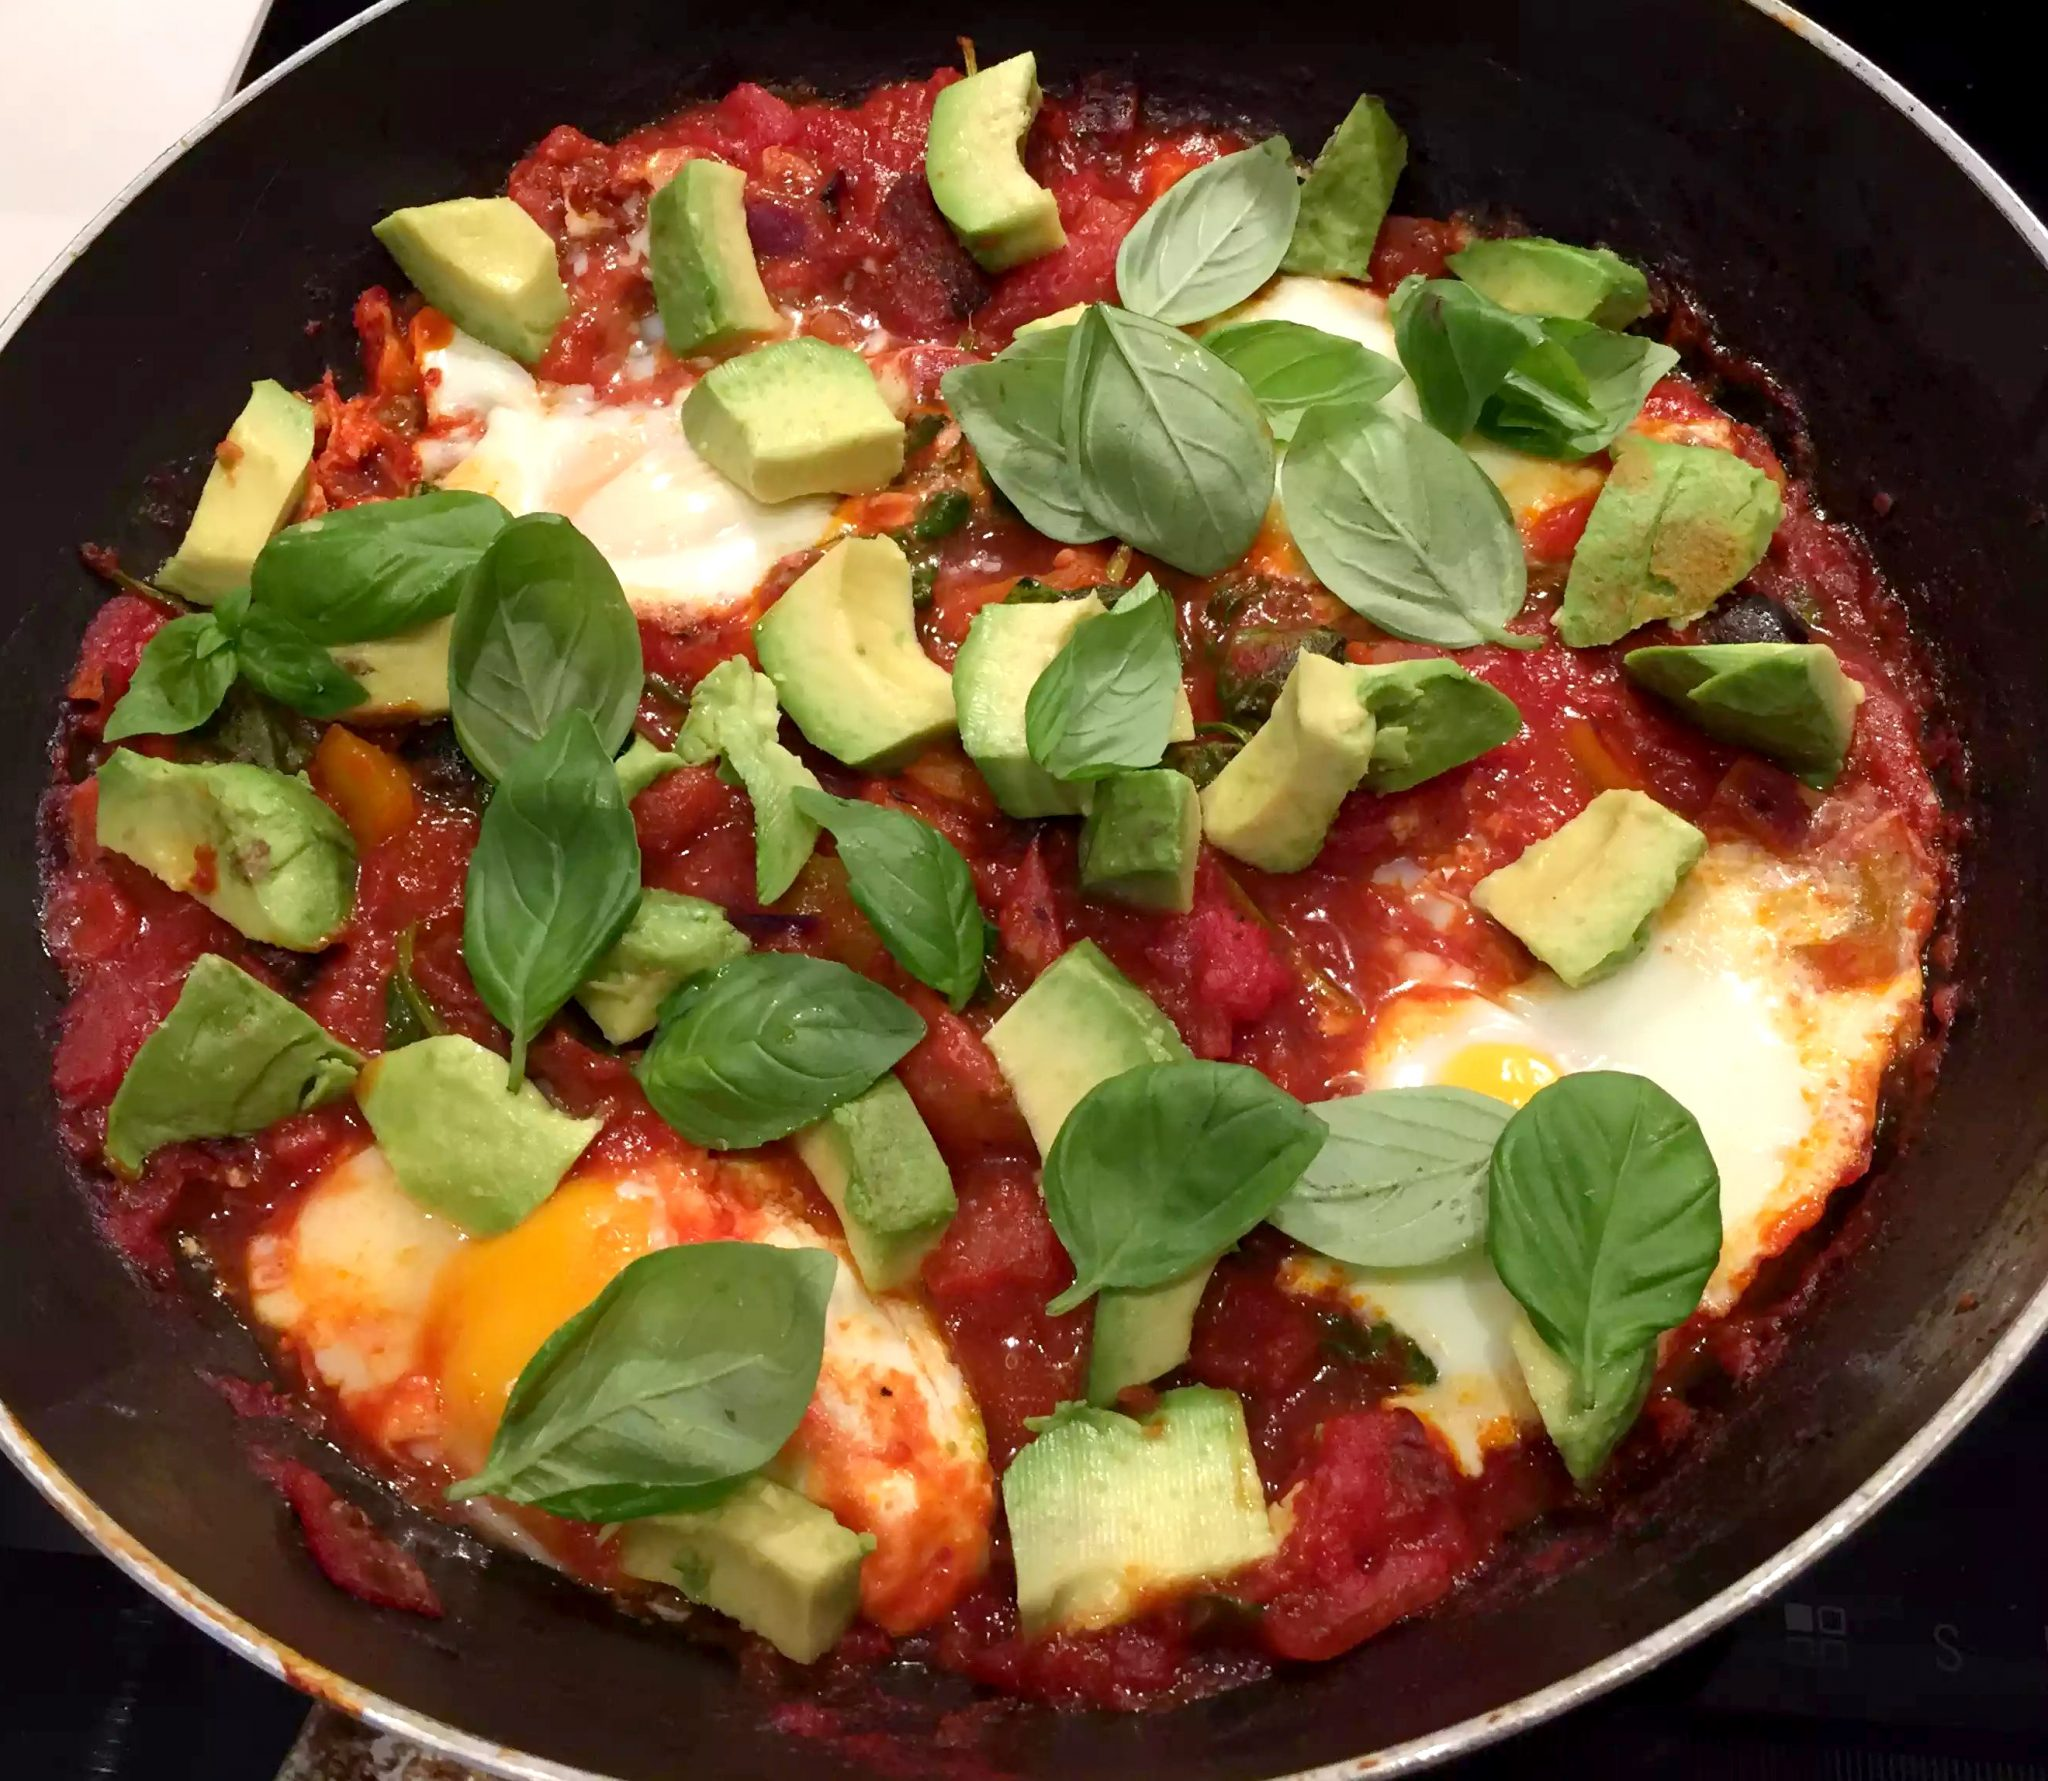 Huevos Rancheros Chorizo Baked Eggs Tomato Avocado Basil Olives Garlic Pepper Healthy Mexican SCD Paleo Dinner